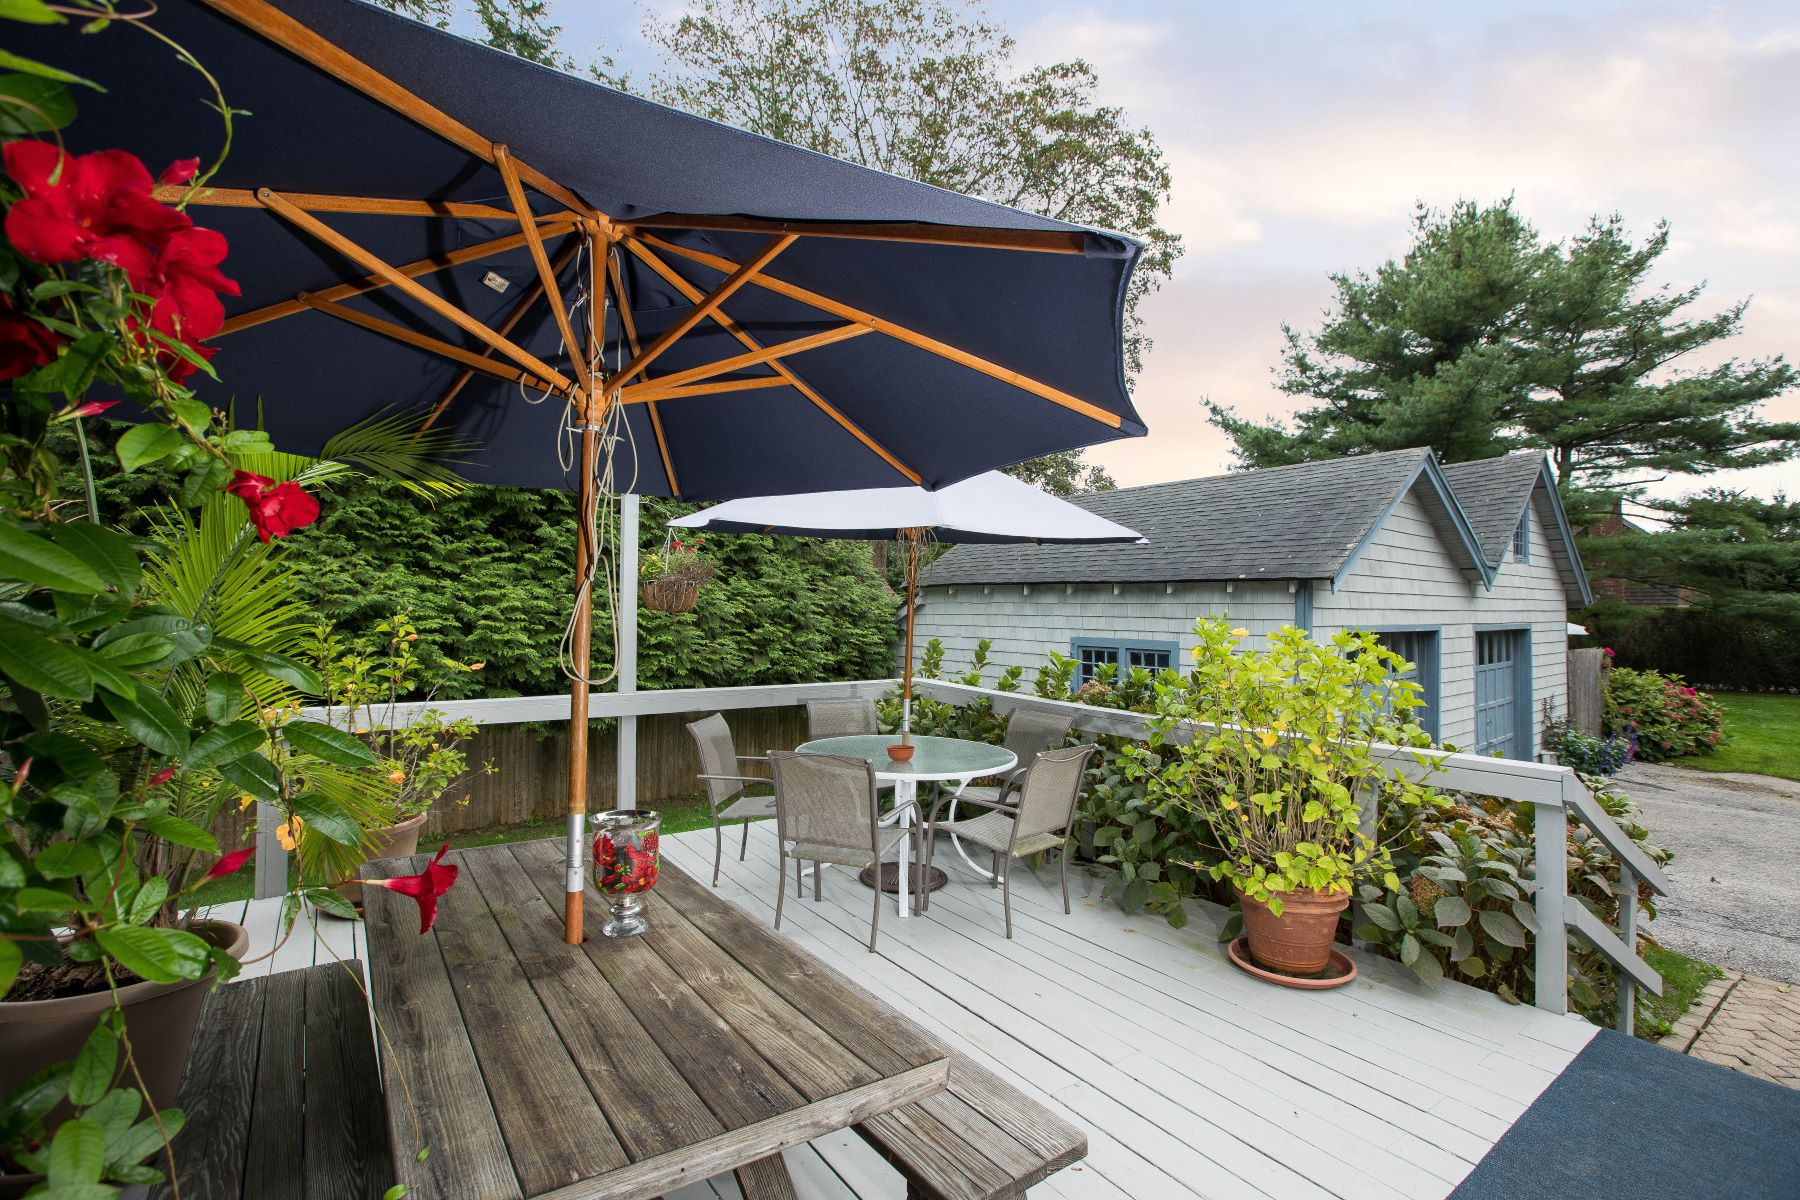 Single Family Homes for Sale at Southampton 86 West Prospect St Southampton, New York 11968 United States